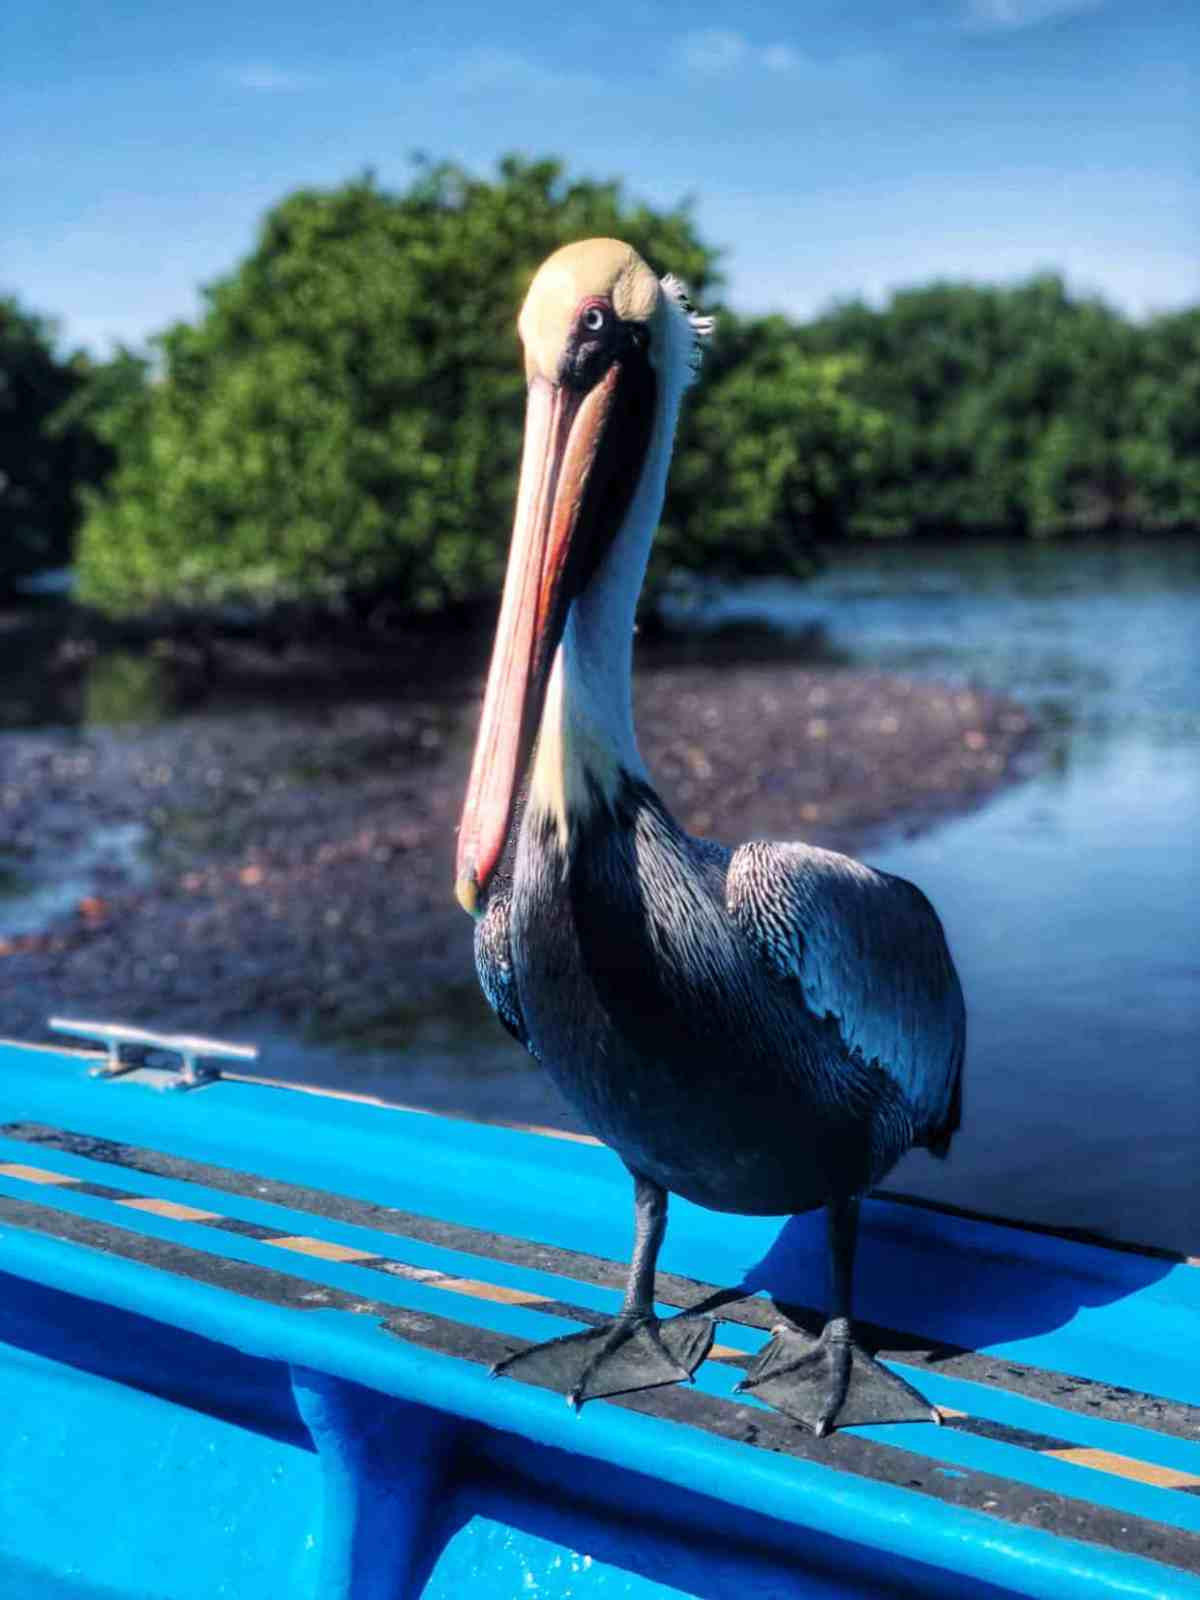 #ad Abundant birdlife in the mangroves of Mazatlan is one of many excursions in Mexico with Princess Cruises.